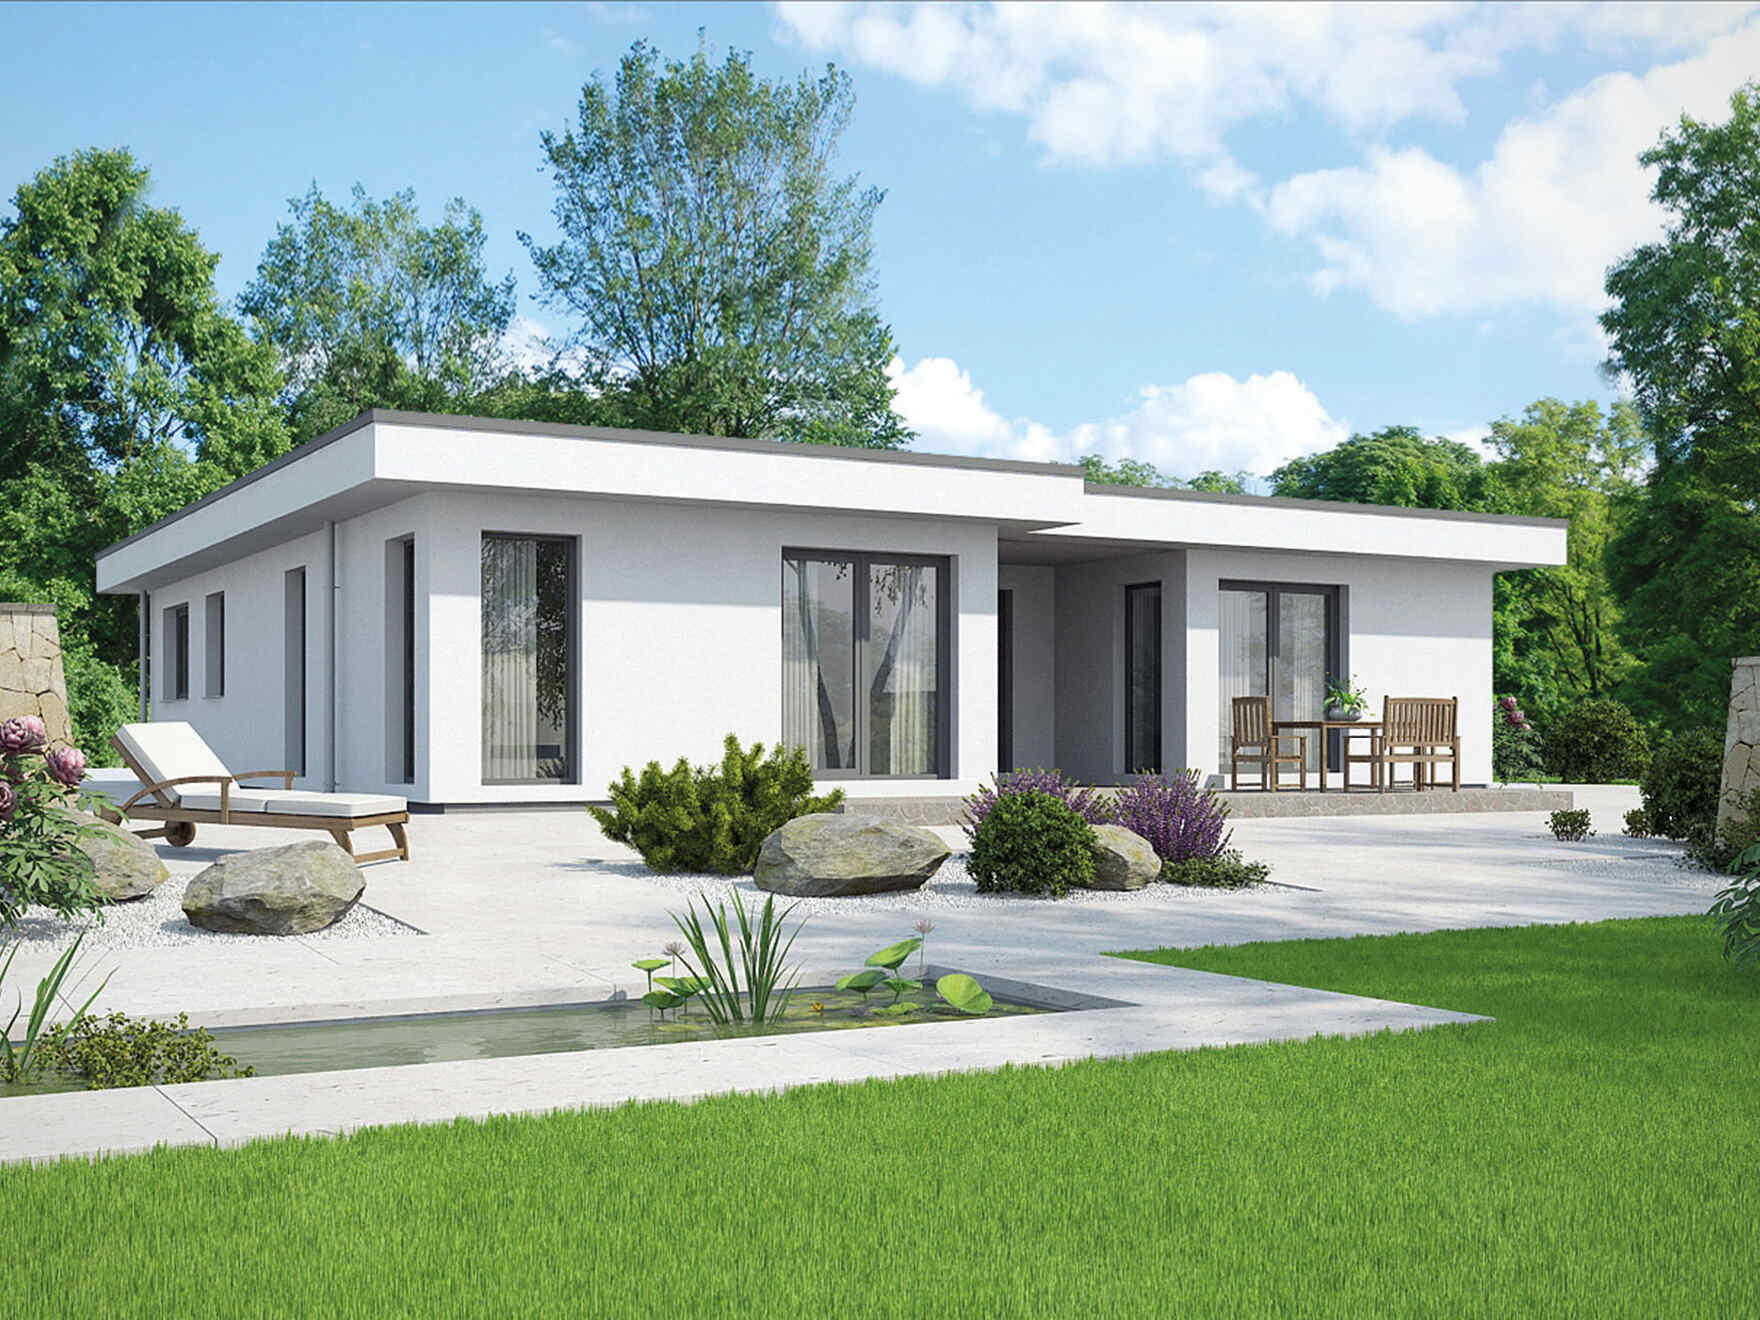 Flachdach Fertighaus Prefabricated Houses From Vario Haus Gives Your Life A Home